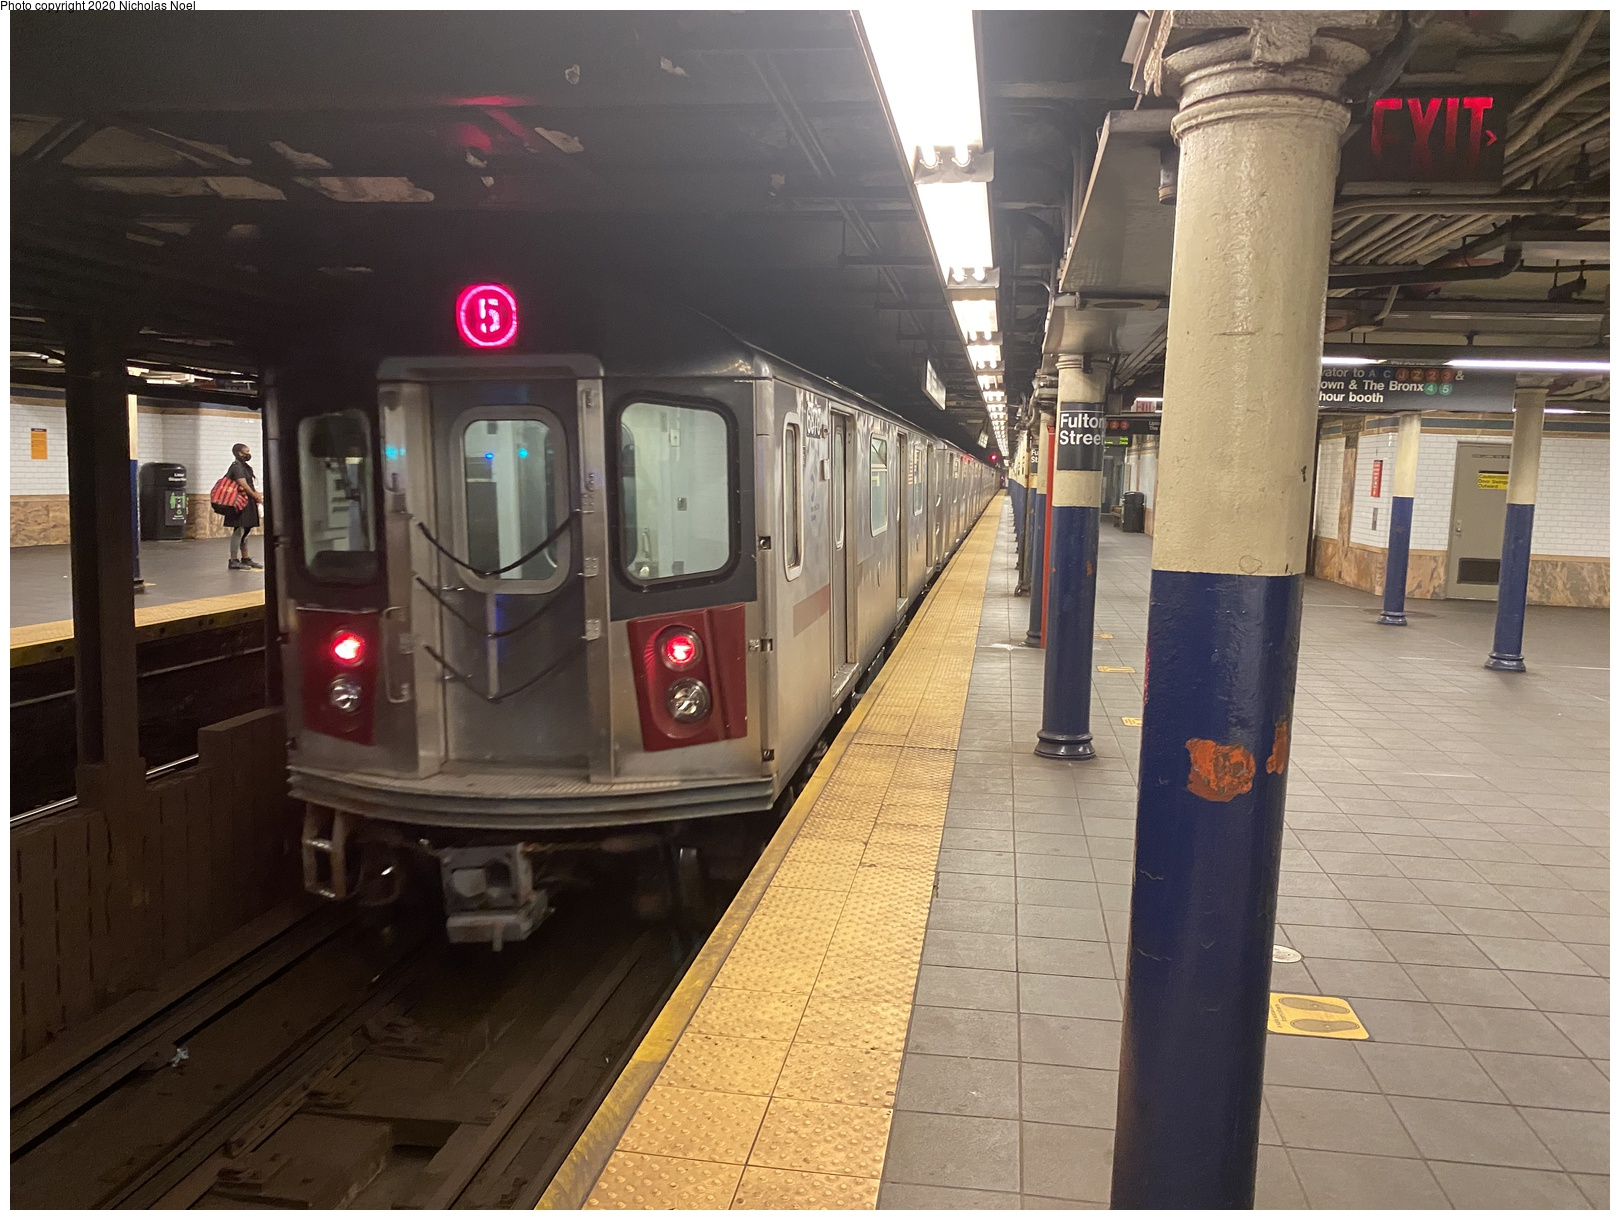 (160k, 1044x687)<br><b>Country:</b> United States<br><b>City:</b> New York<br><b>System:</b> New York City Transit<br><b>Line:</b> IRT Flushing Line<br><b>Location:</b> 33rd Street/Rawson Street <br><b>Car:</b> BMT QX   <br><b>Photo by:</b> Joel Shanus<br><b>Notes:</b> Low-roof 2-car BMT Work Service QX unit on center track, circa 1950<br><b>Viewed (this week/total):</b> 2 / 1526